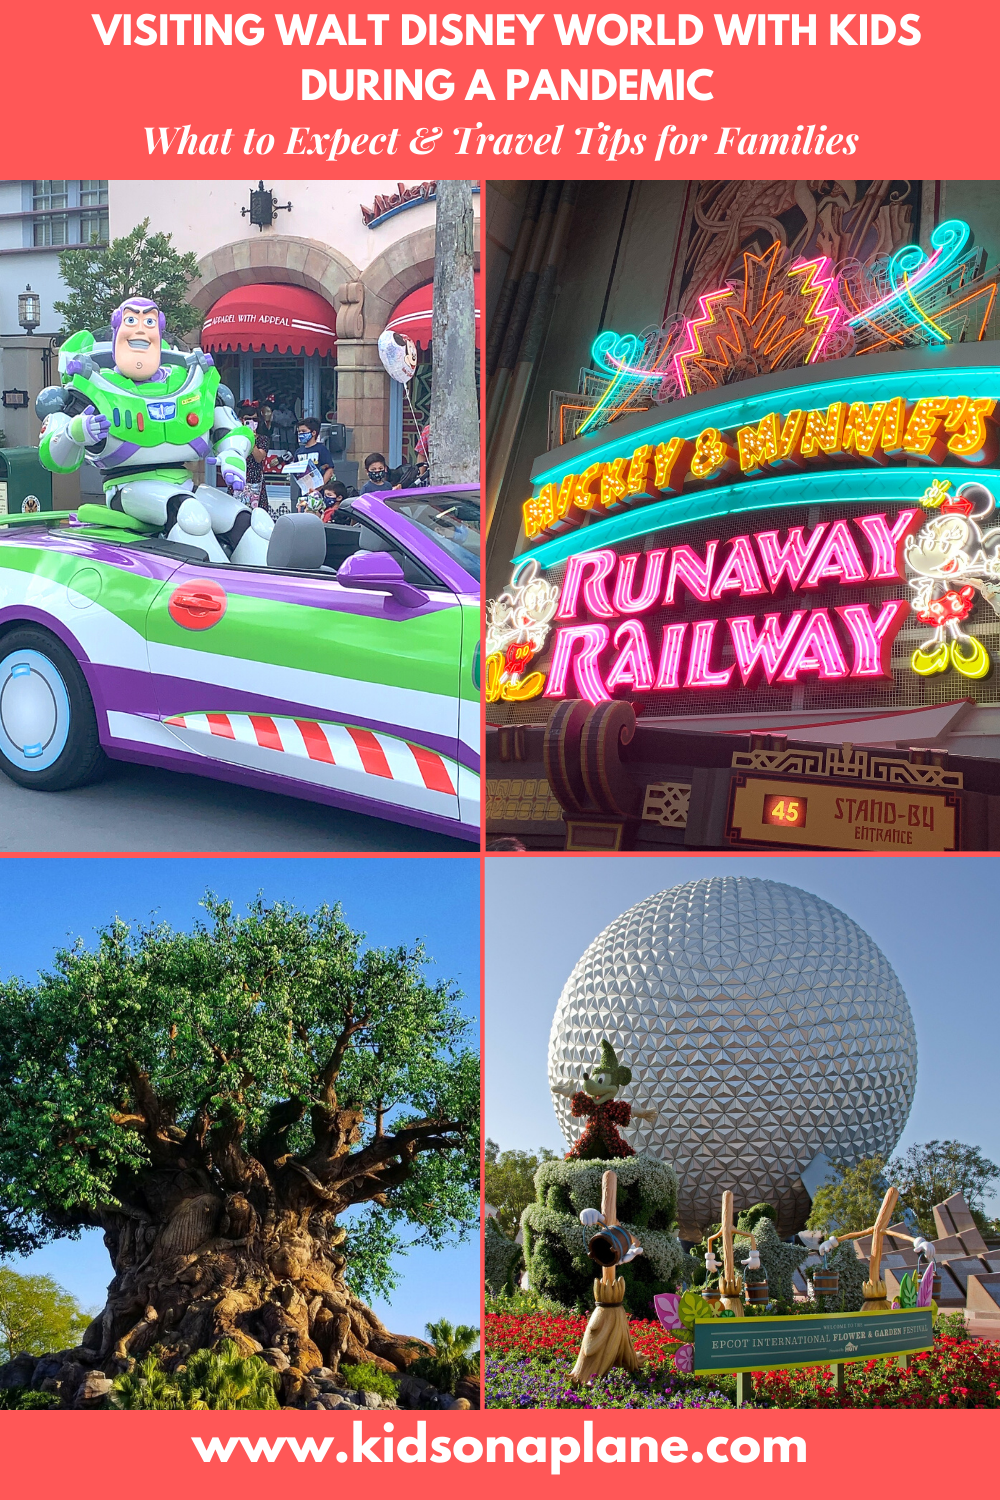 Walt Disney World with Kids During a Pandemic - What to Expect and Travel Tips